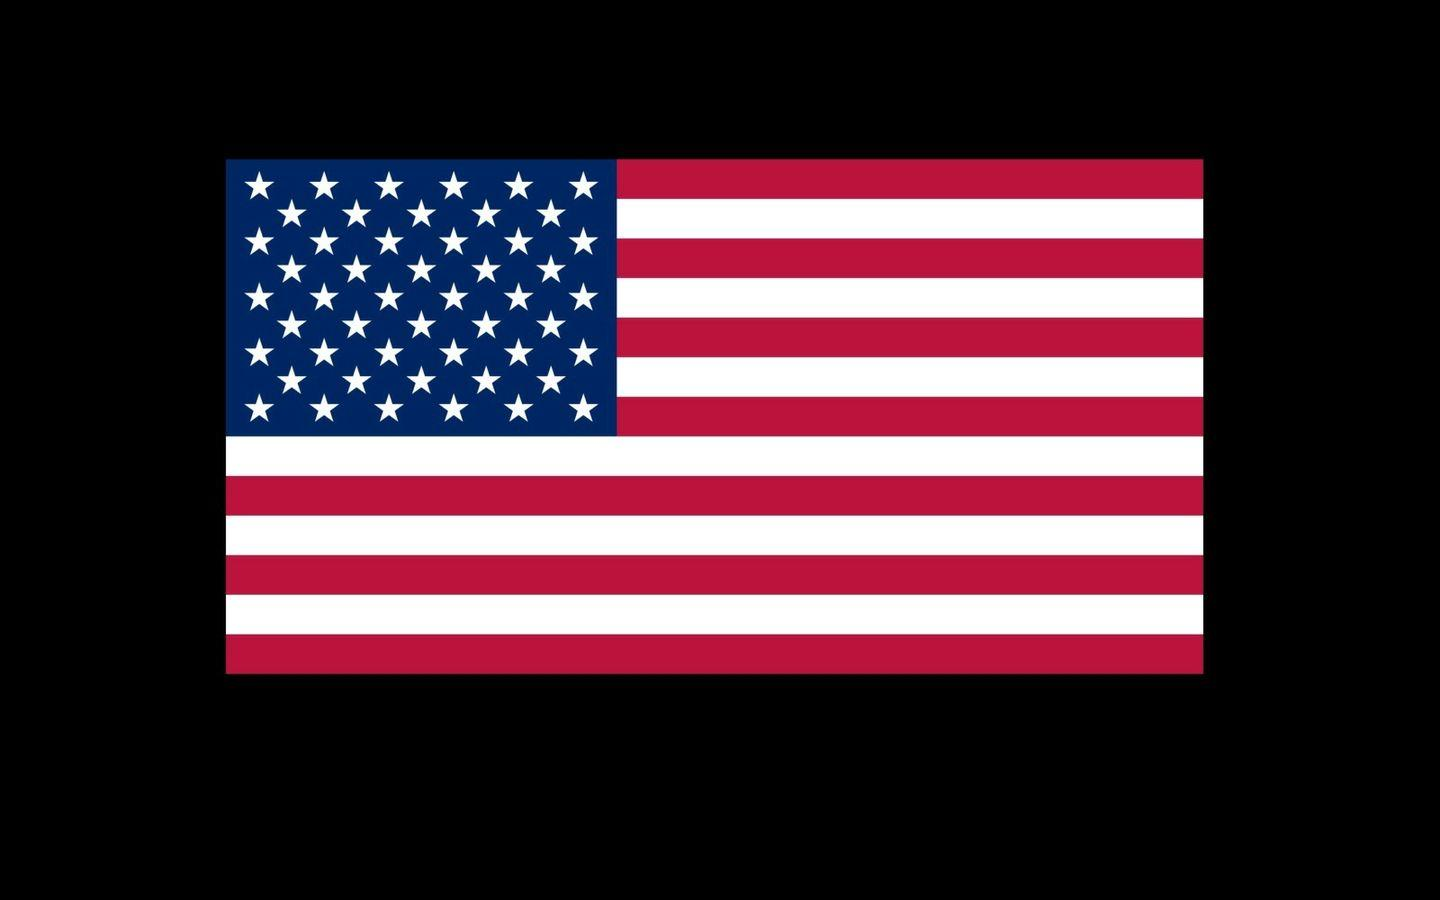 1440x900 United States of America Flag Download Wallpaper 1440x900 ...